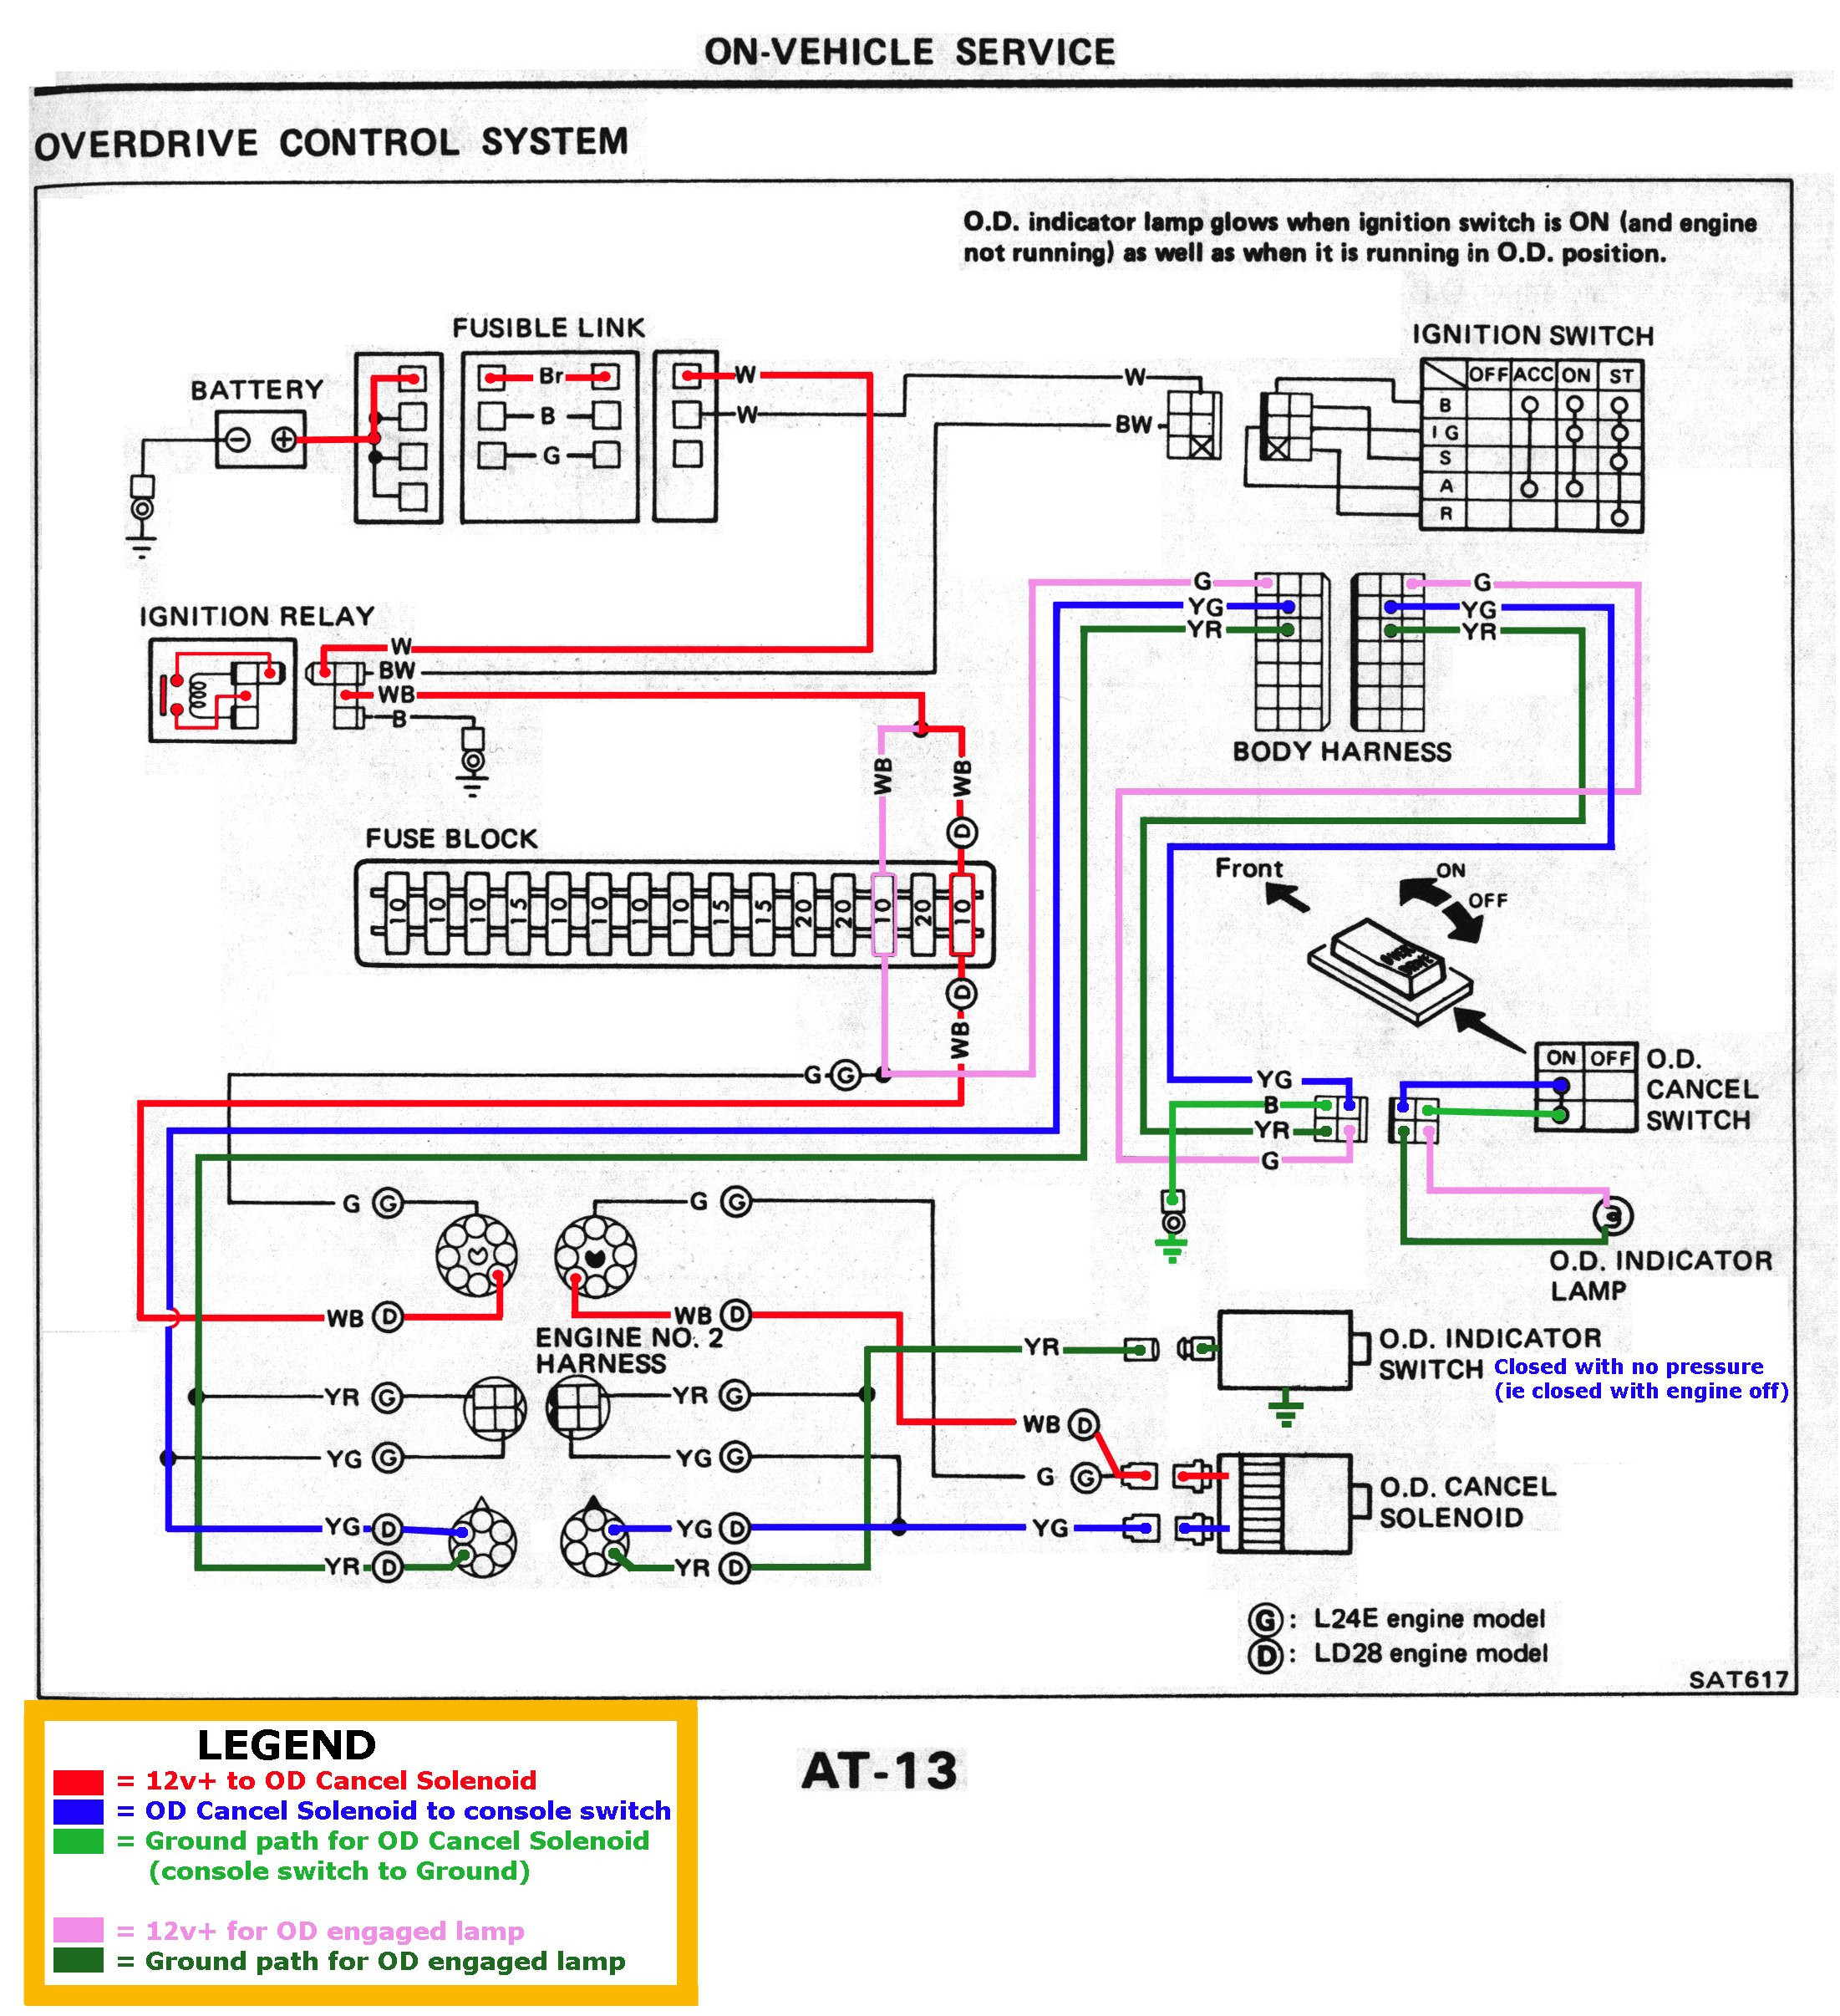 alarm panel wiring diagram Download-Wiring Diagram for Auto Gate Valid Wiring Diagram for Automatic Gates New Alarm Panel Wiring Diagram 11-r